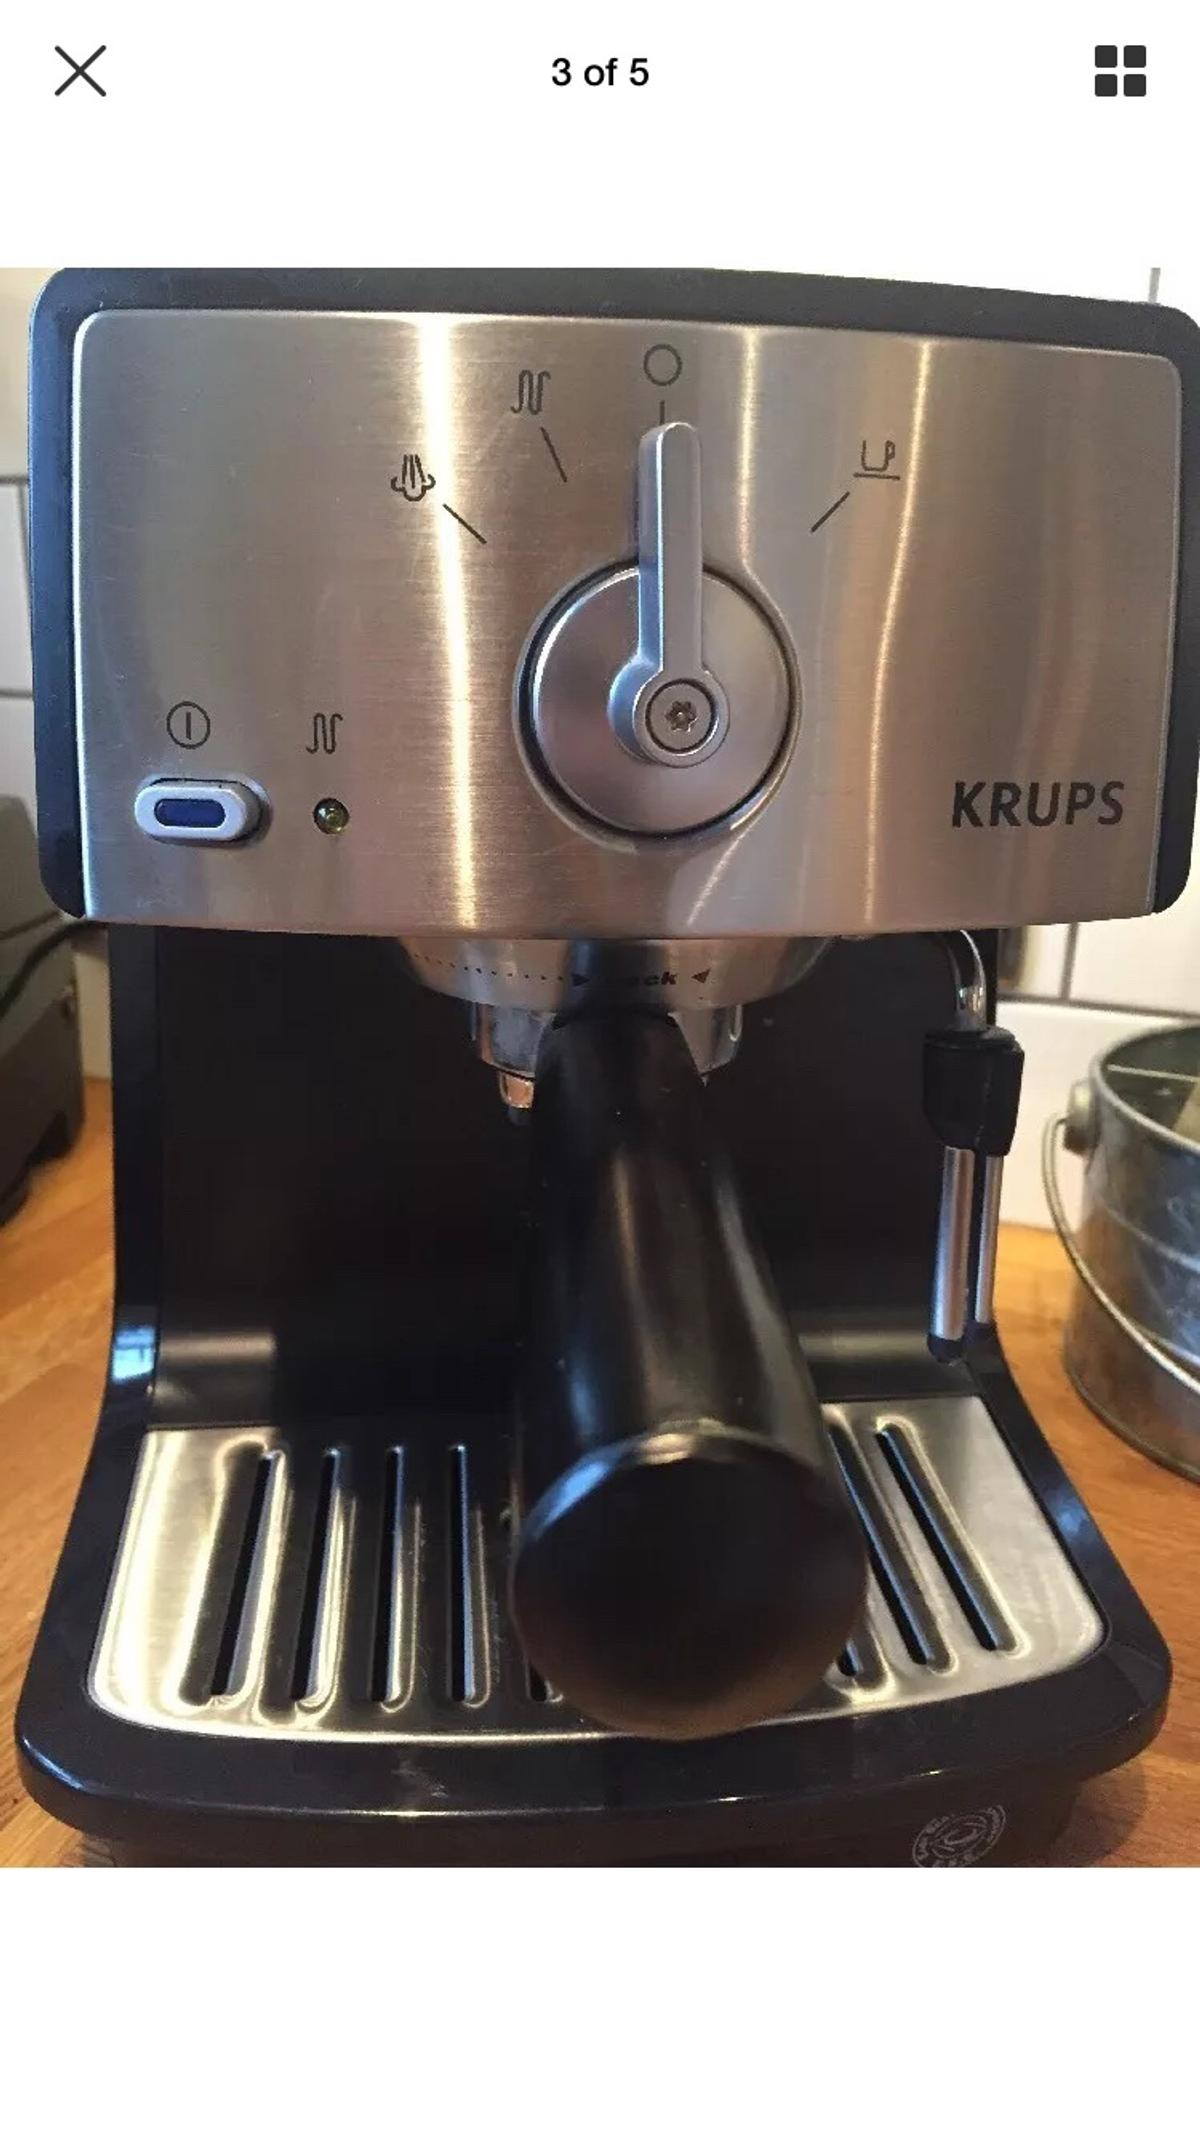 Krups Xp4020 Manual Expresso Coffee Machine In W4 London For